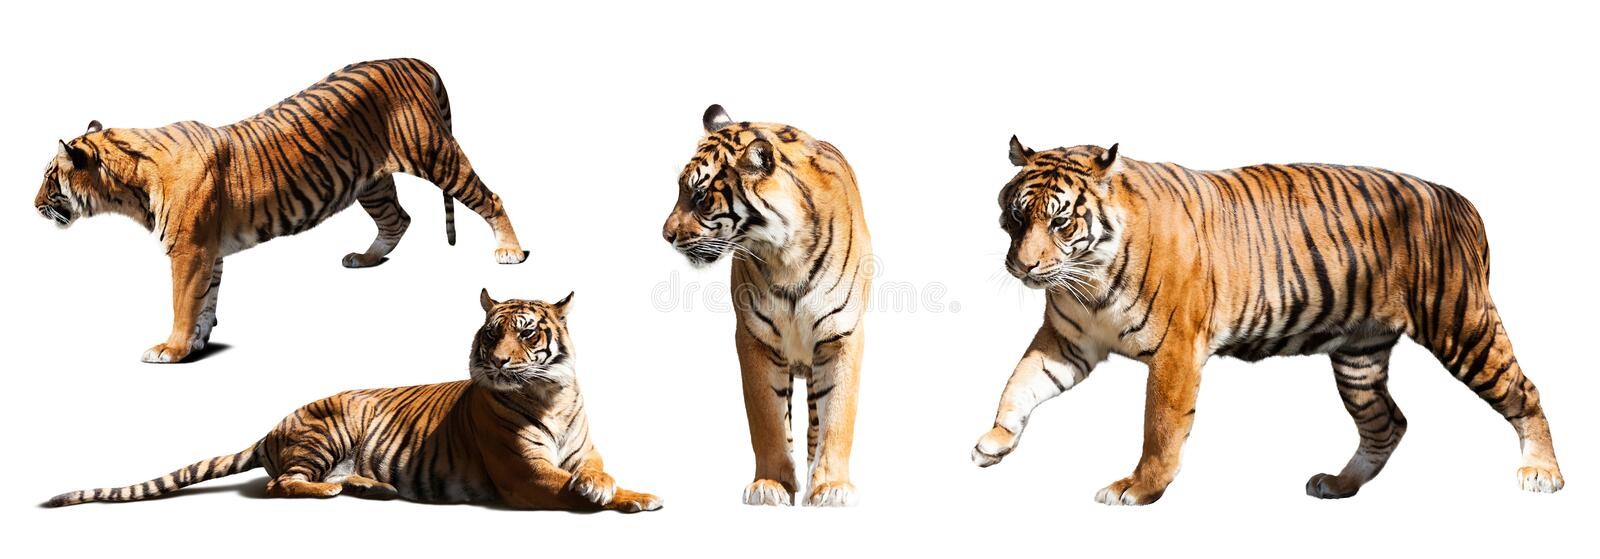 Set of tigers over white background royalty free stock image